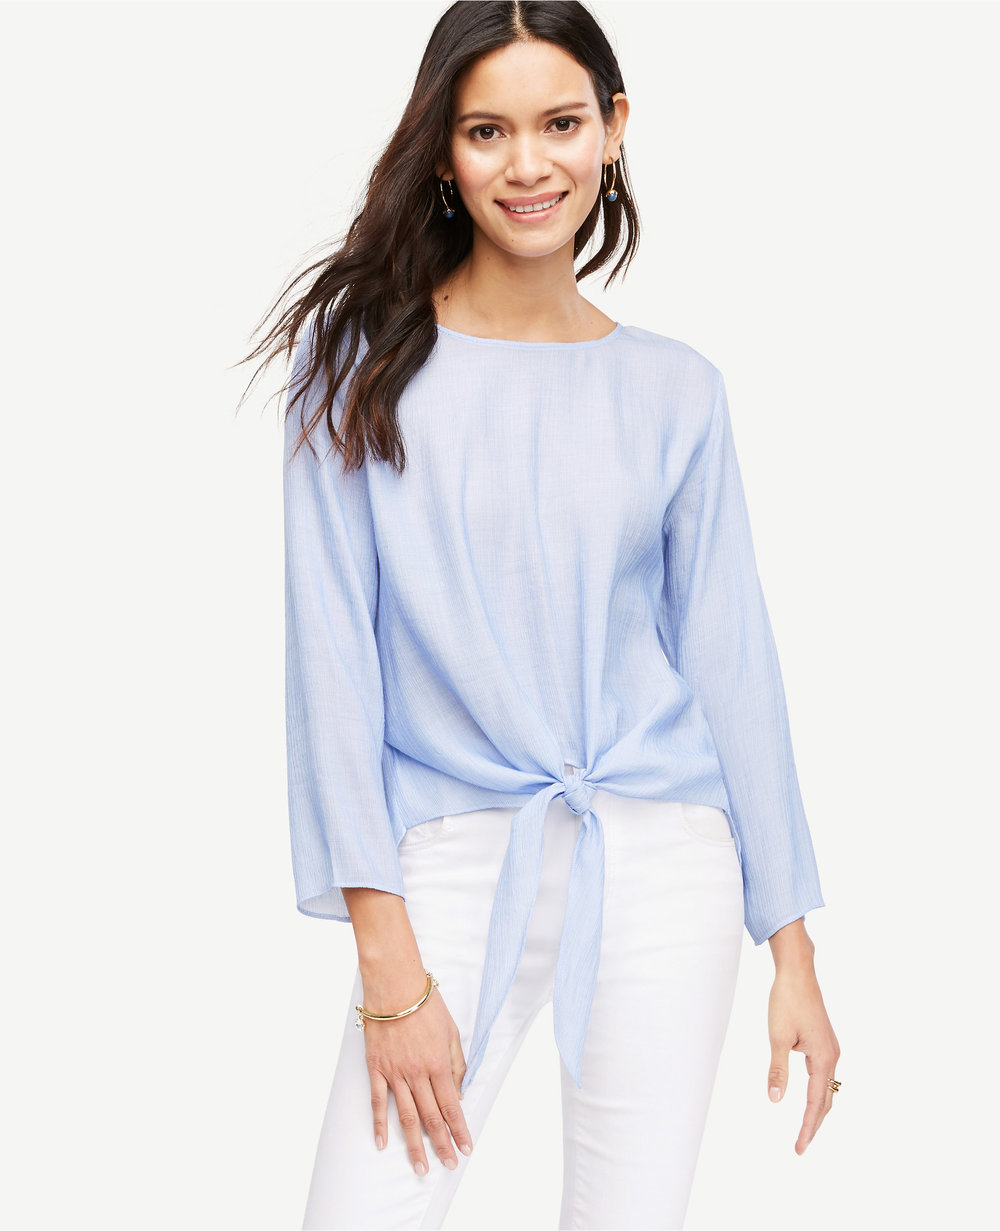 Textured Tie Waist Blouse. Available in two colors. Ann Taylor. $79.50. Additional 50% off everything with code: CYBER50.